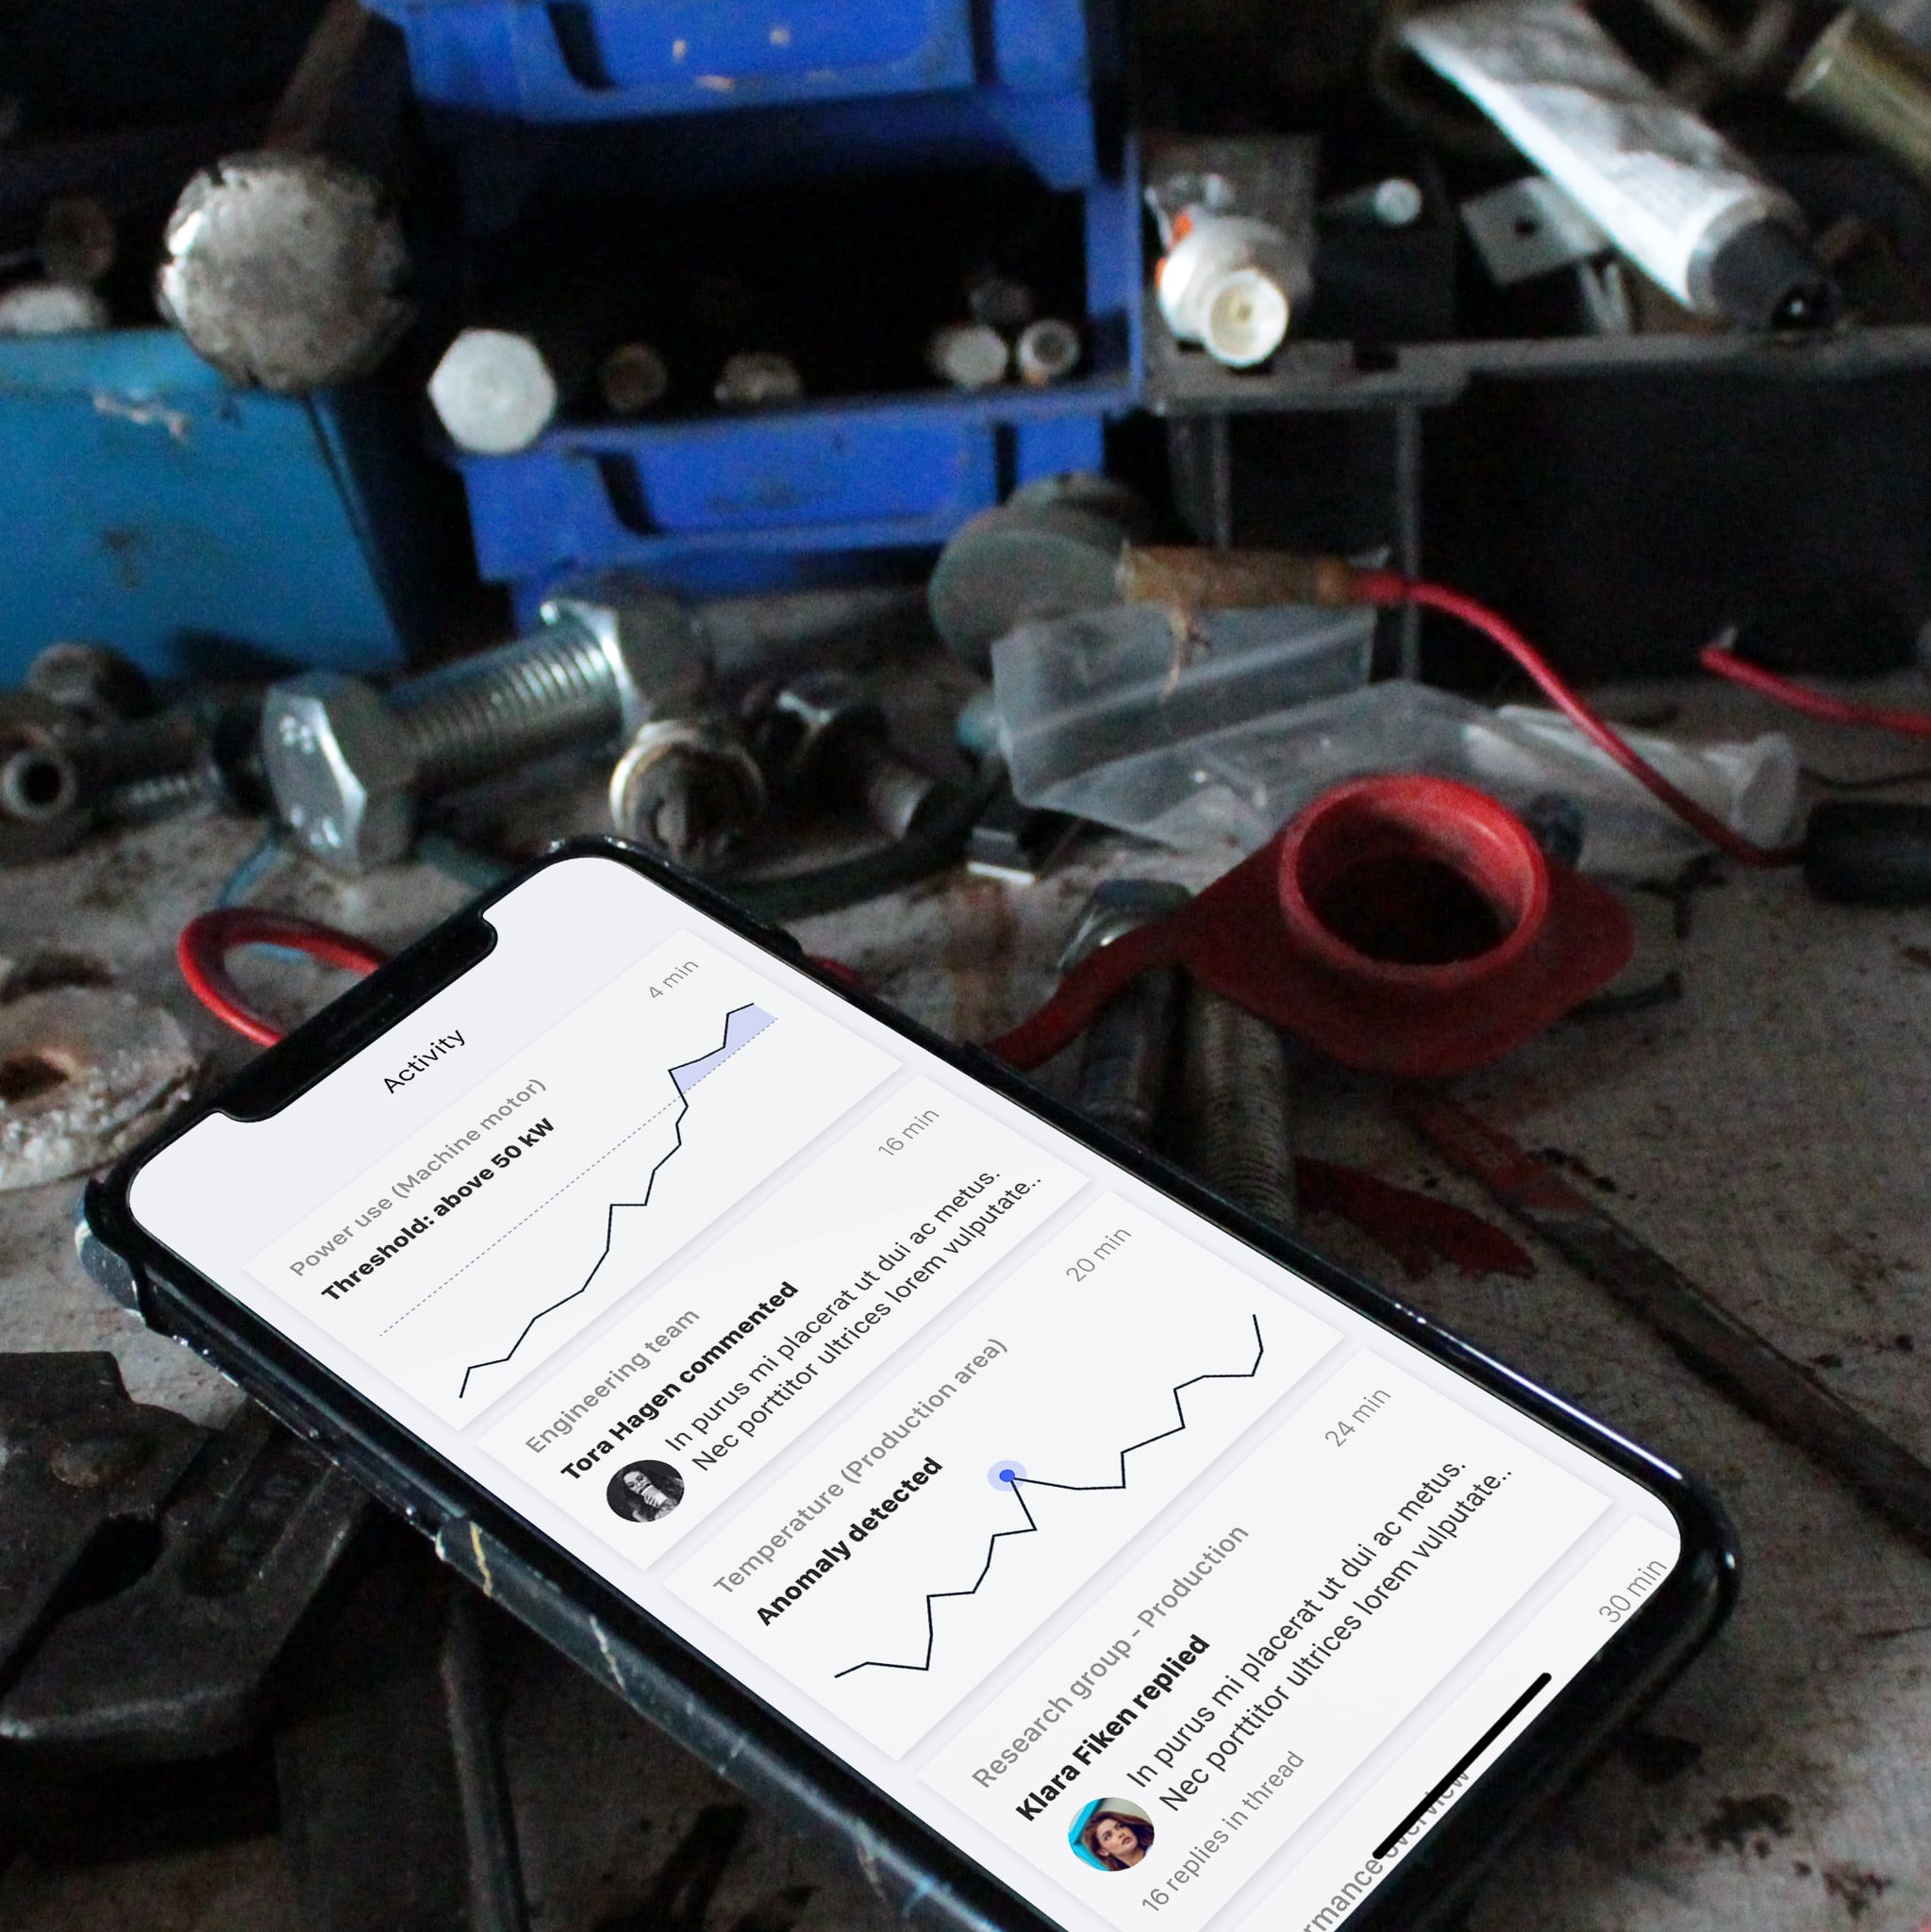 Clarify app interface displaying anomaly detection on iPhone at messy industrial desk